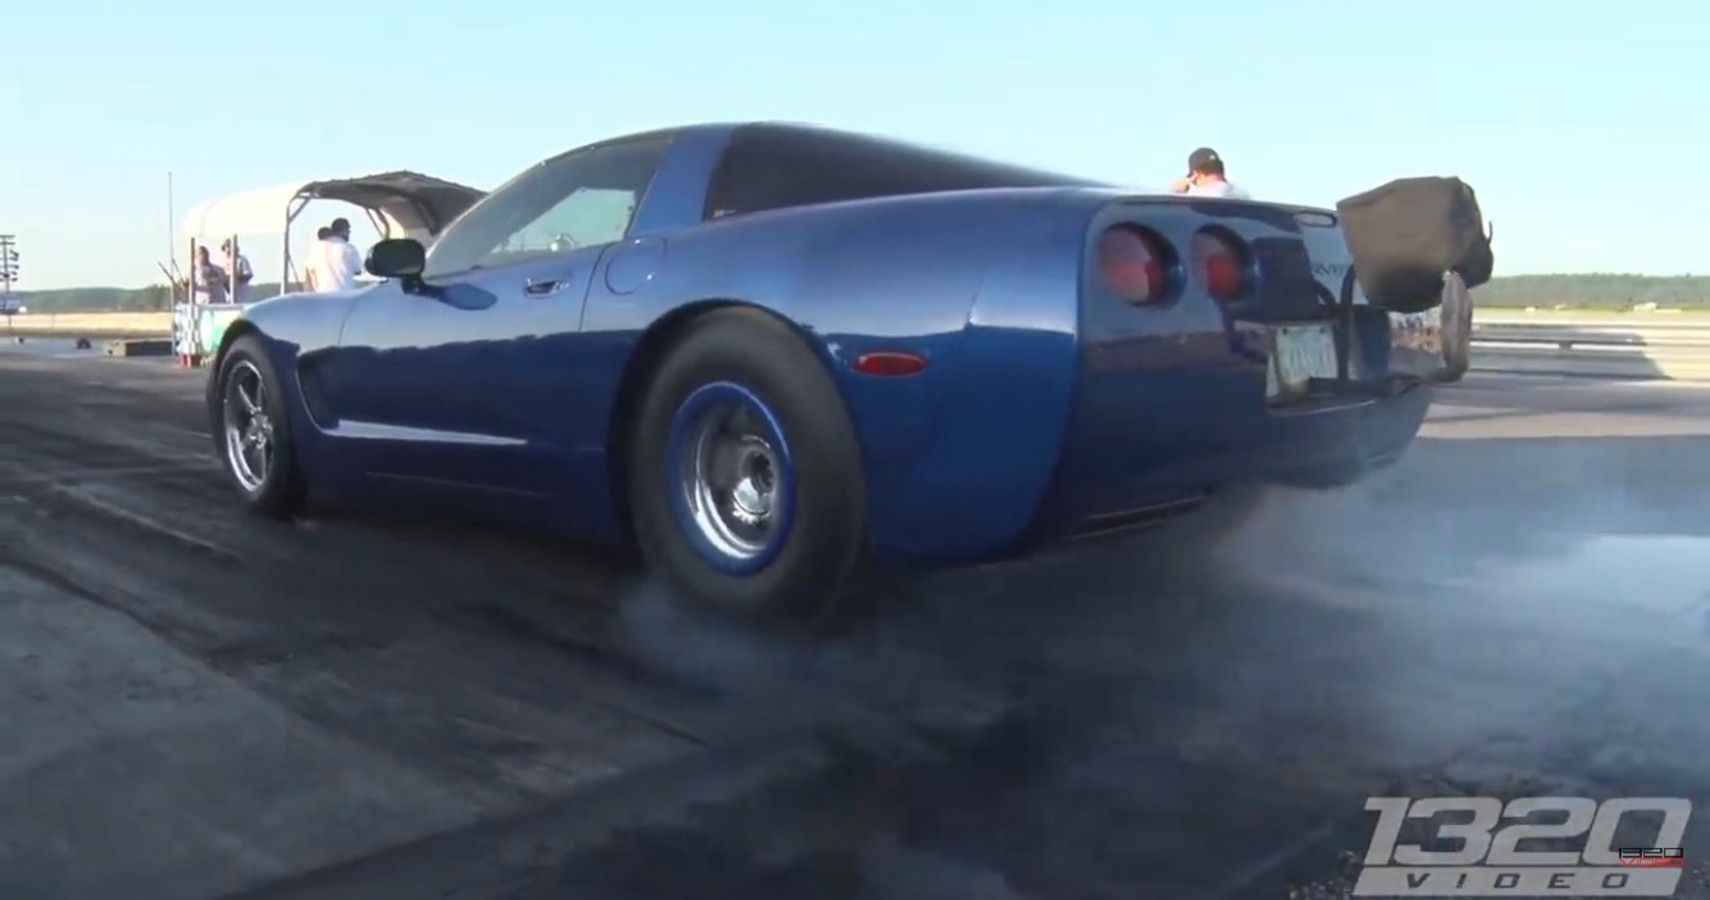 1320Video Highlights A Procharged Corvette Running 148MPH Down The Strip